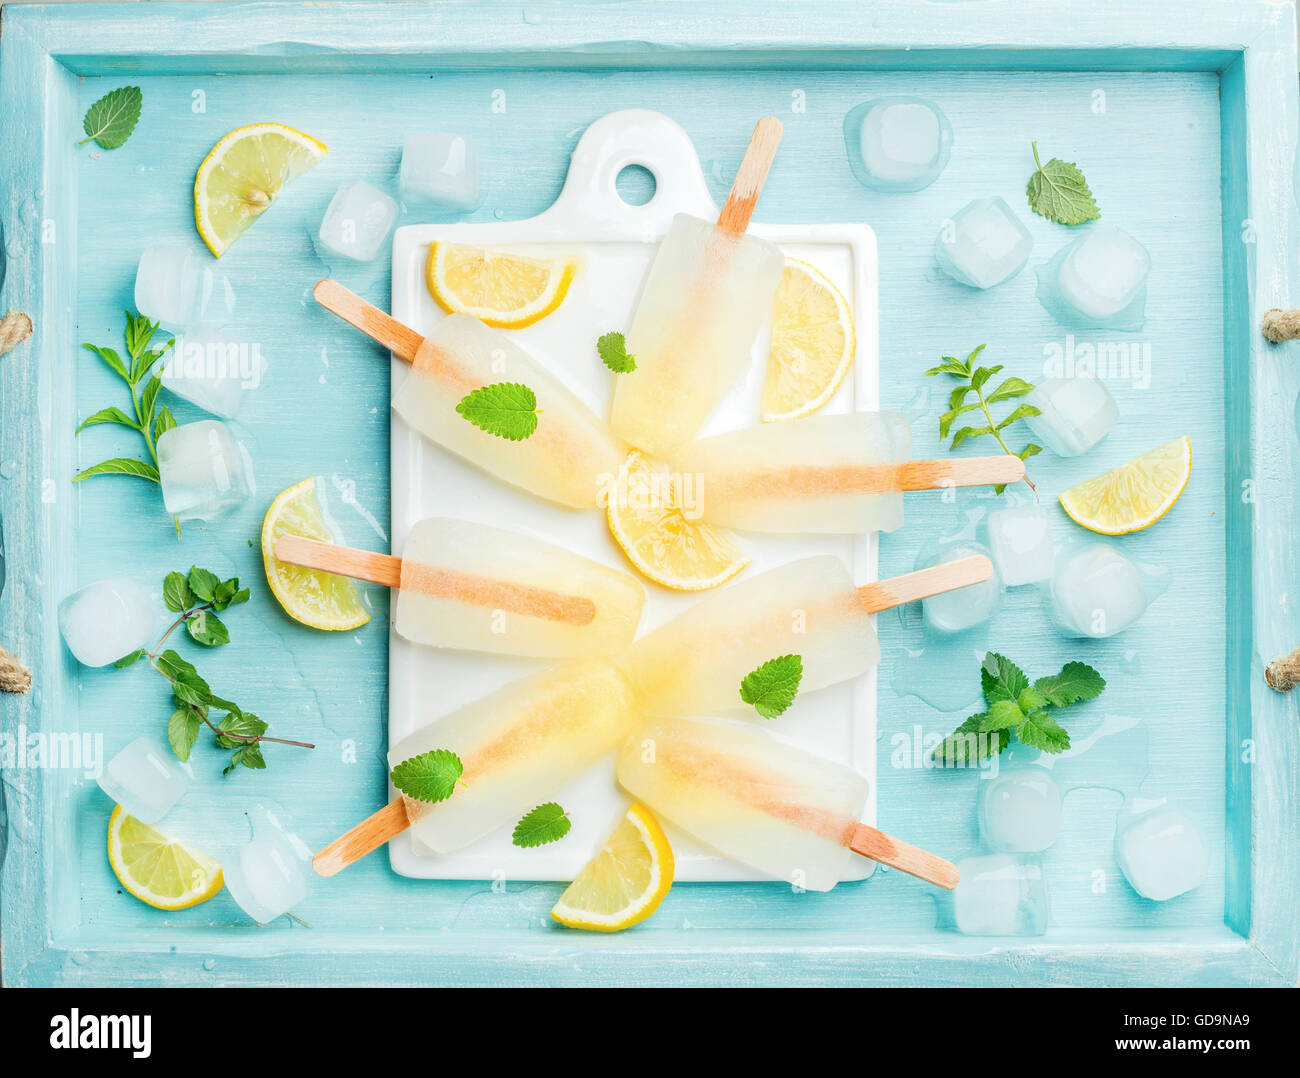 Lemon ice lollies on white ceramic board served with lemon slices, ice cubes and mint leaves over blue Turquoise - Stock Image